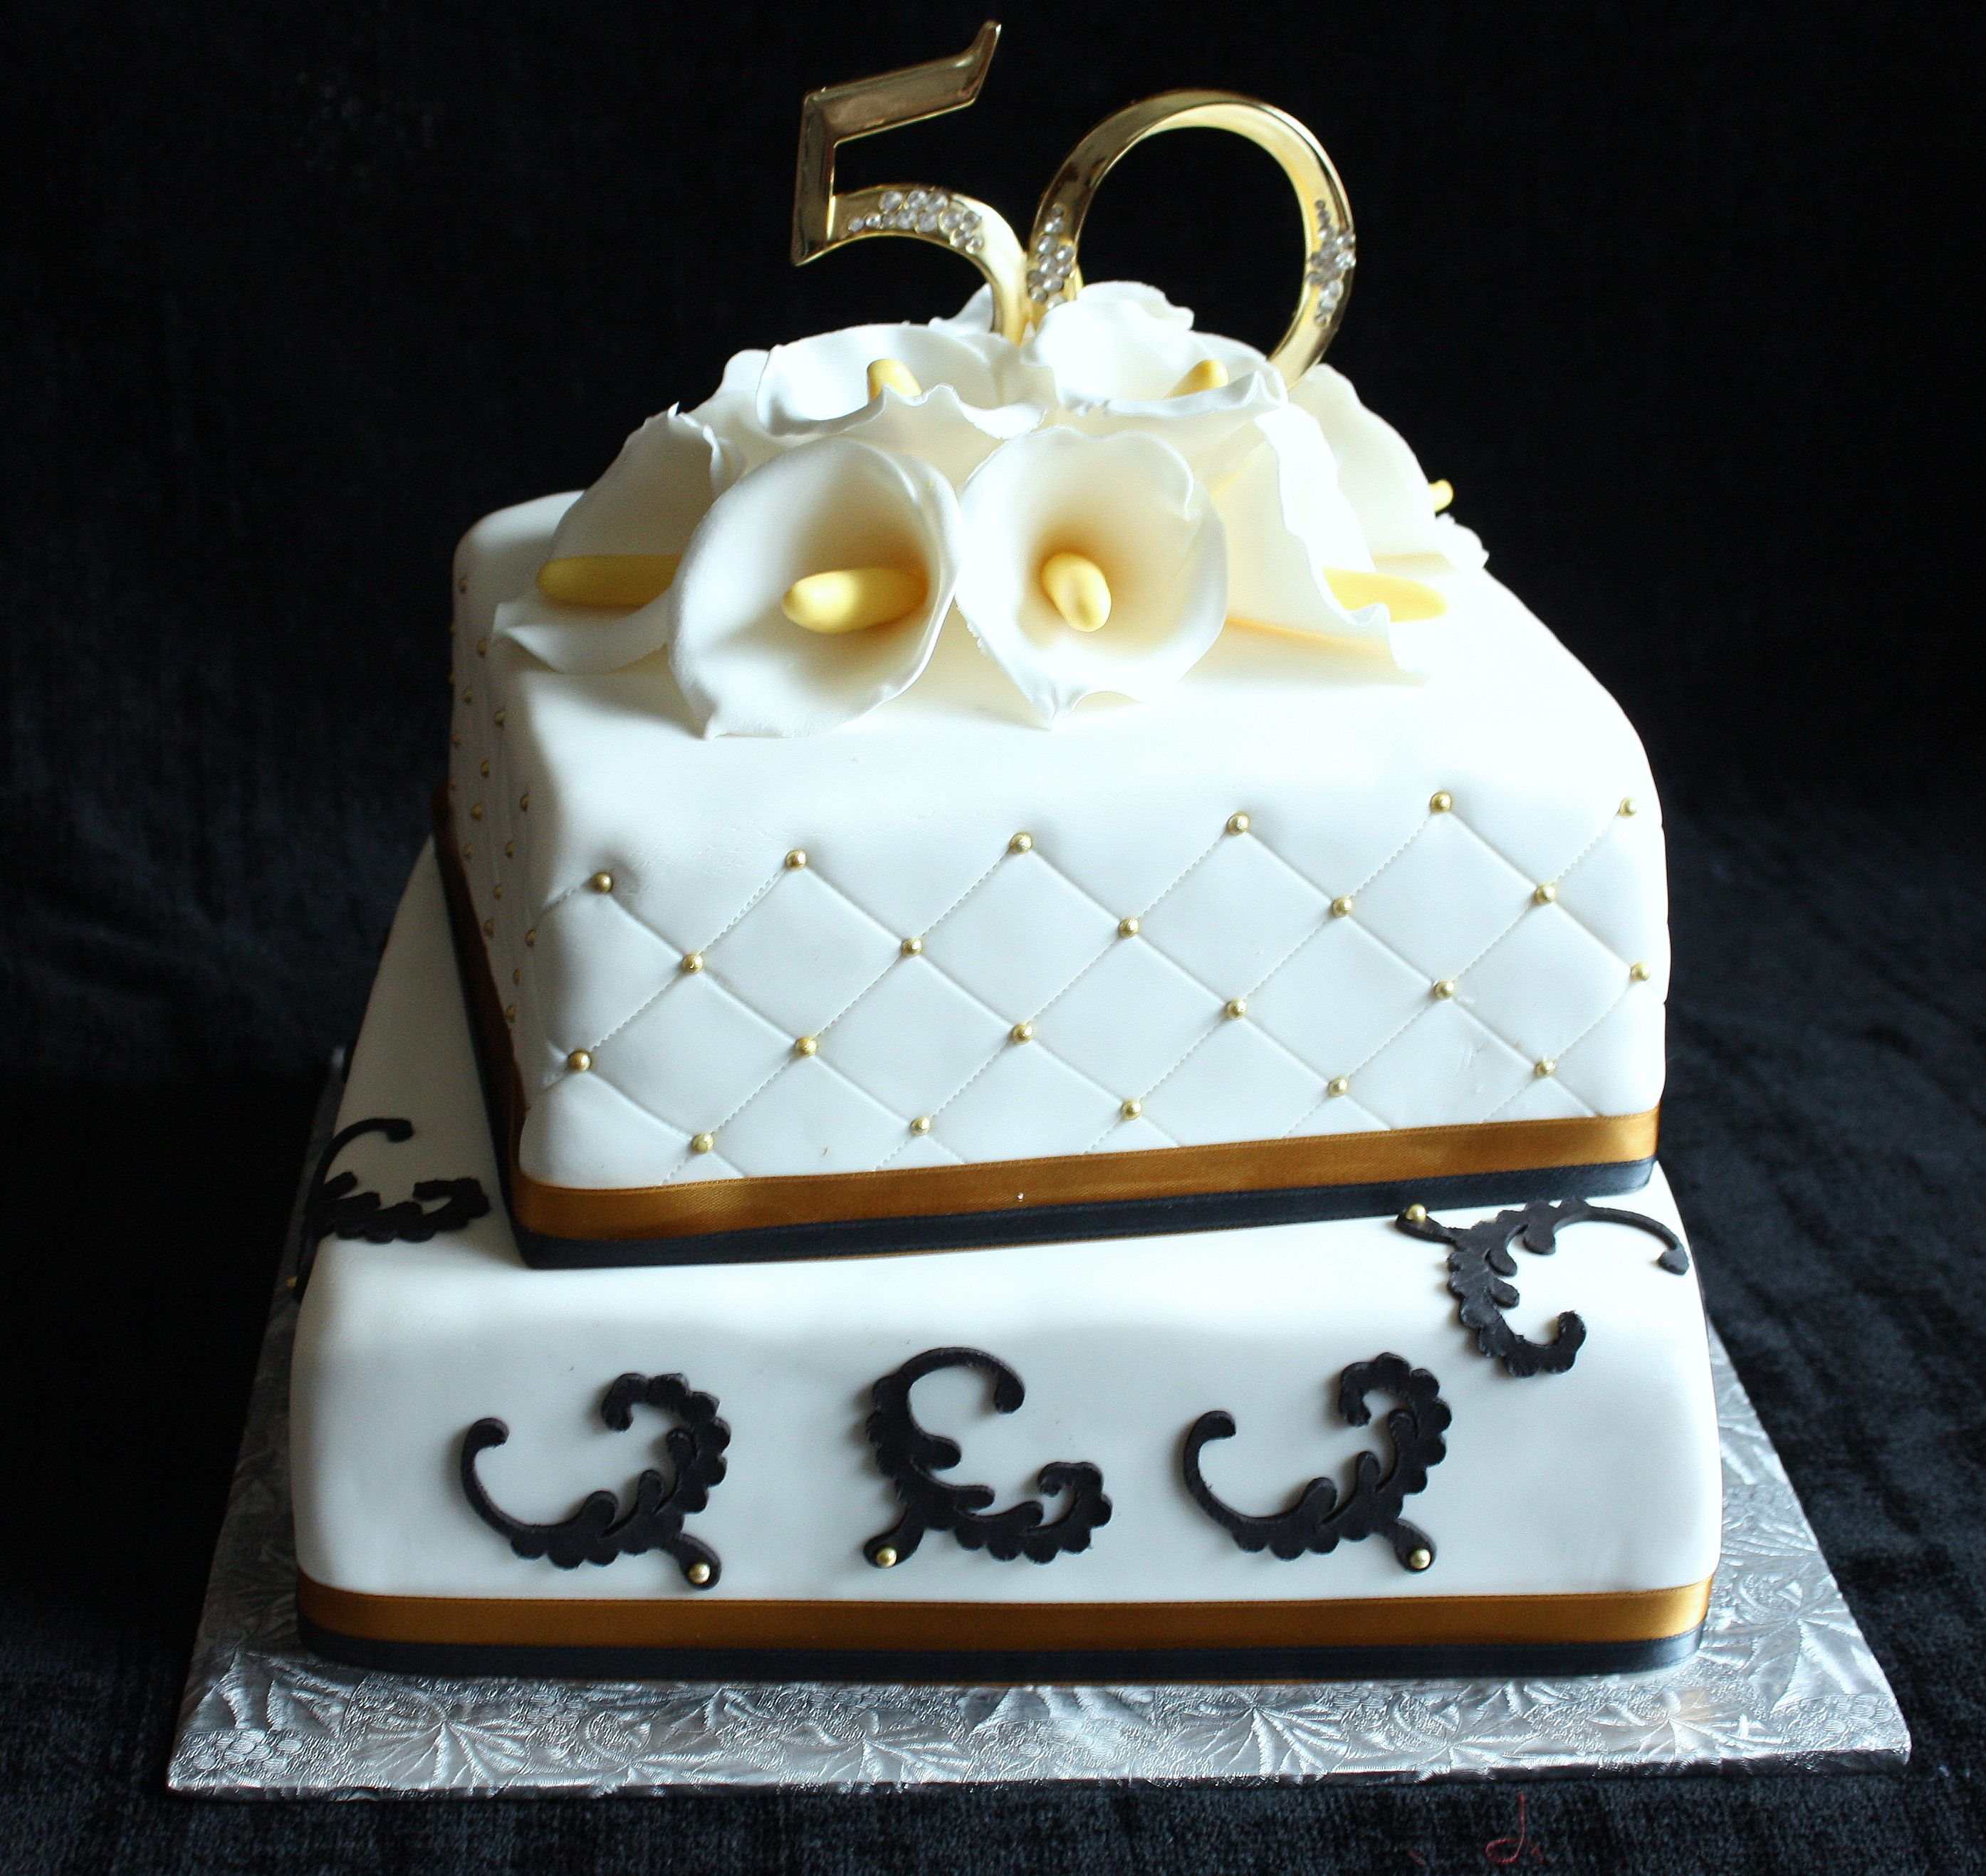 50Th Anniversary Cake (With images) 50th anniversary